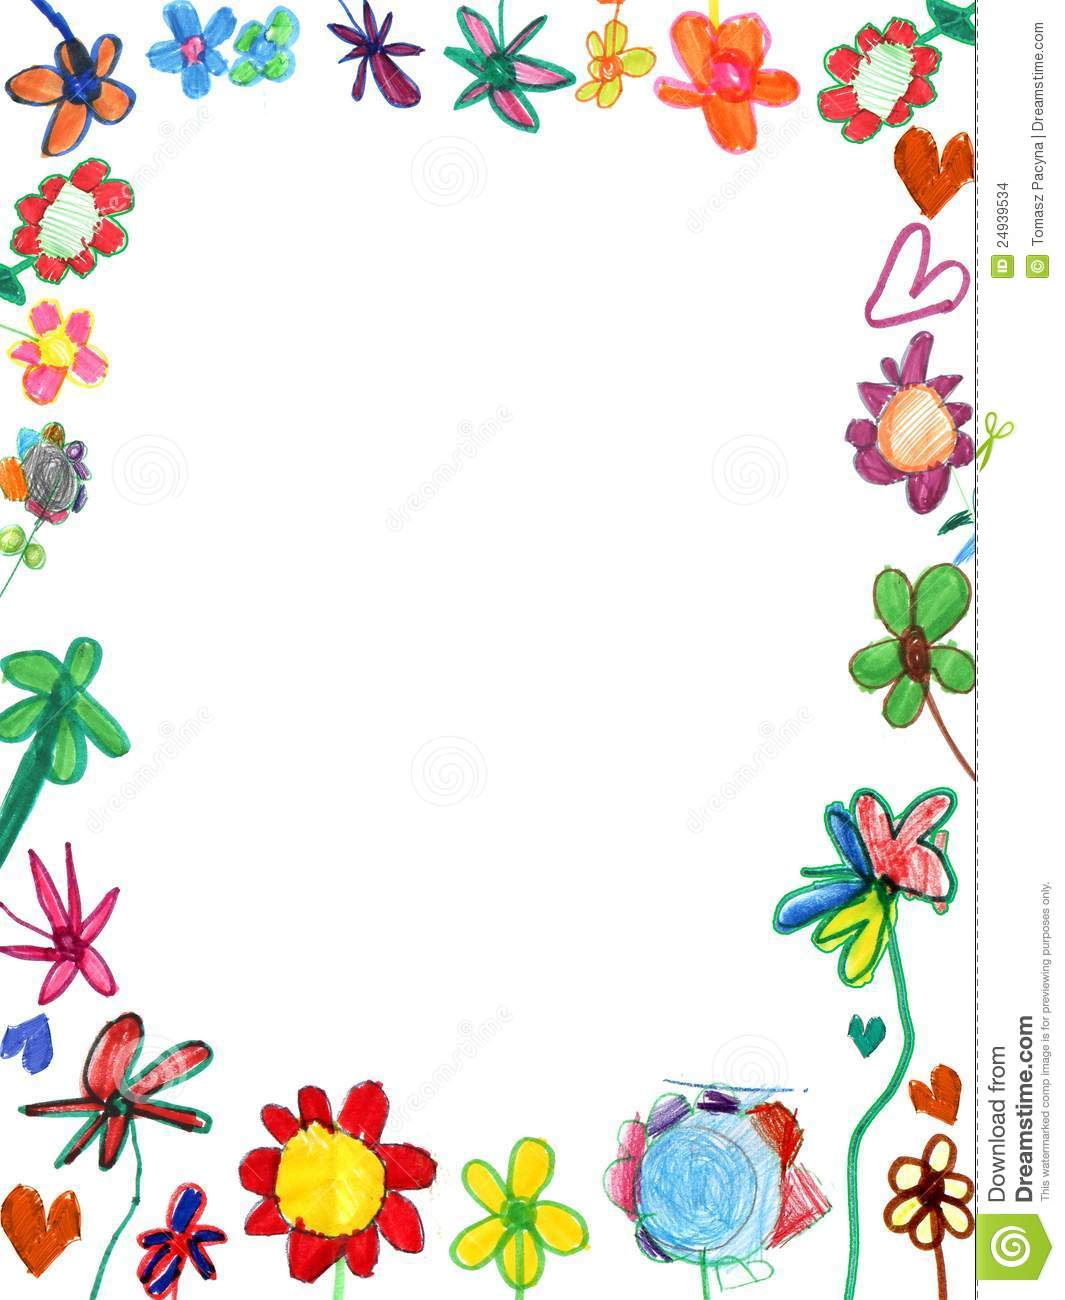 Vertical flowers frame, child illustration